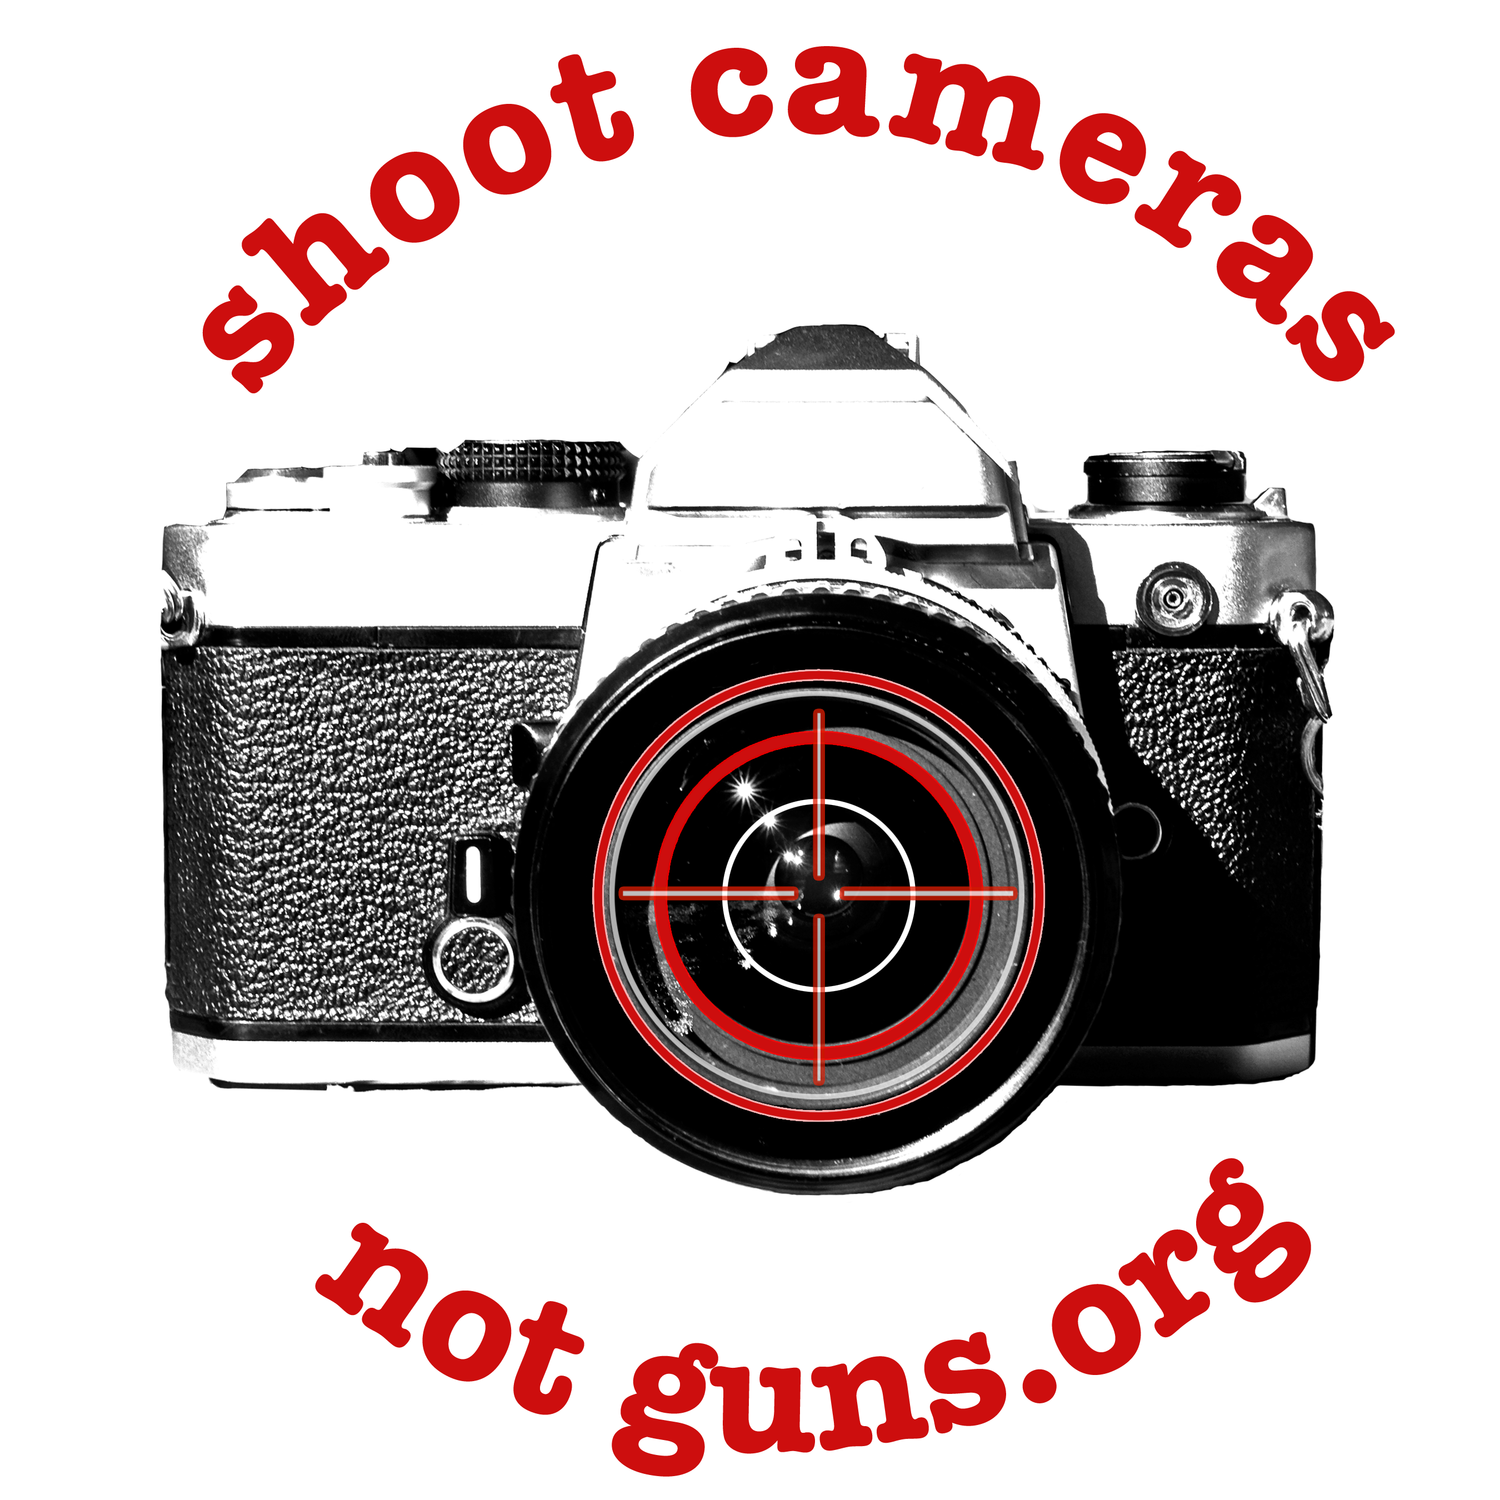 Shoot Cameras Not Guns